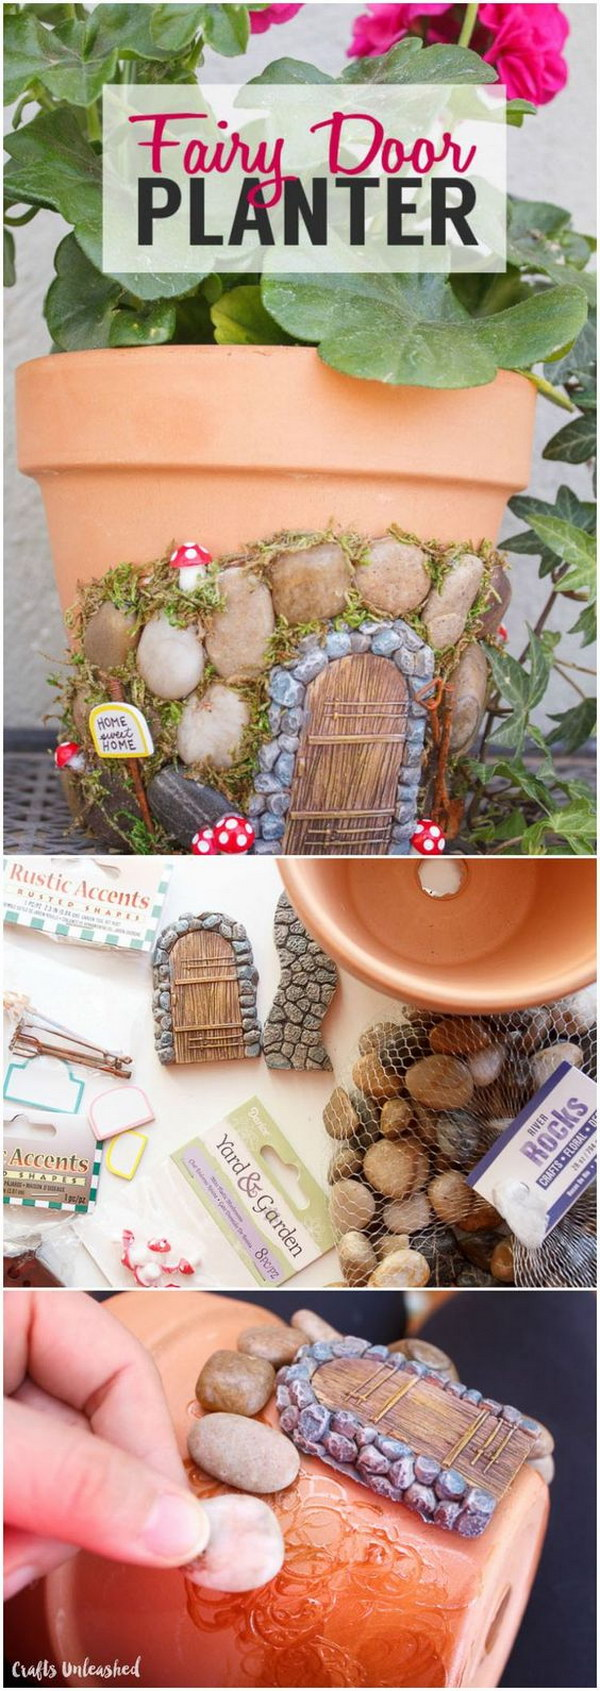 Fairy Garden Ideas: DIY Terracotta Fairy House Planter